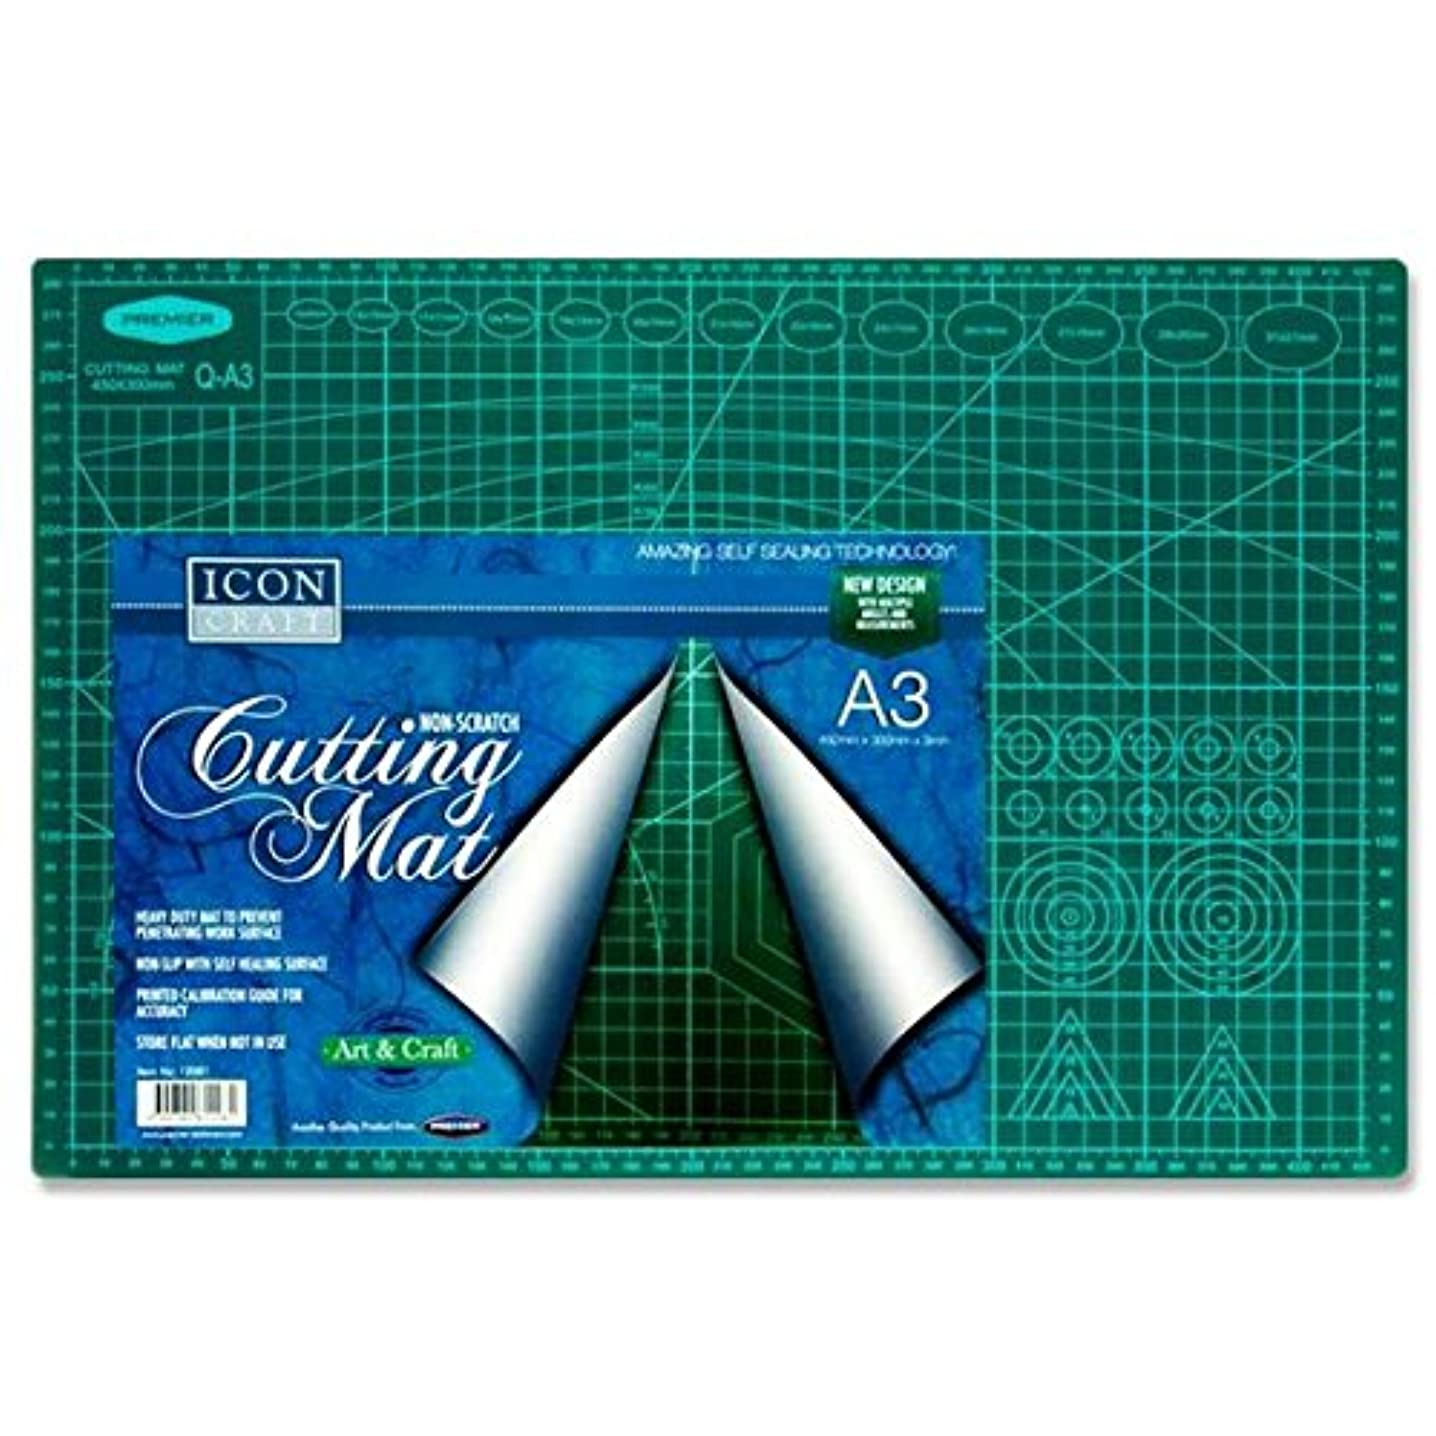 Premier Stationery W2112081 A3 Icon Non-Scratch Cutting Mat